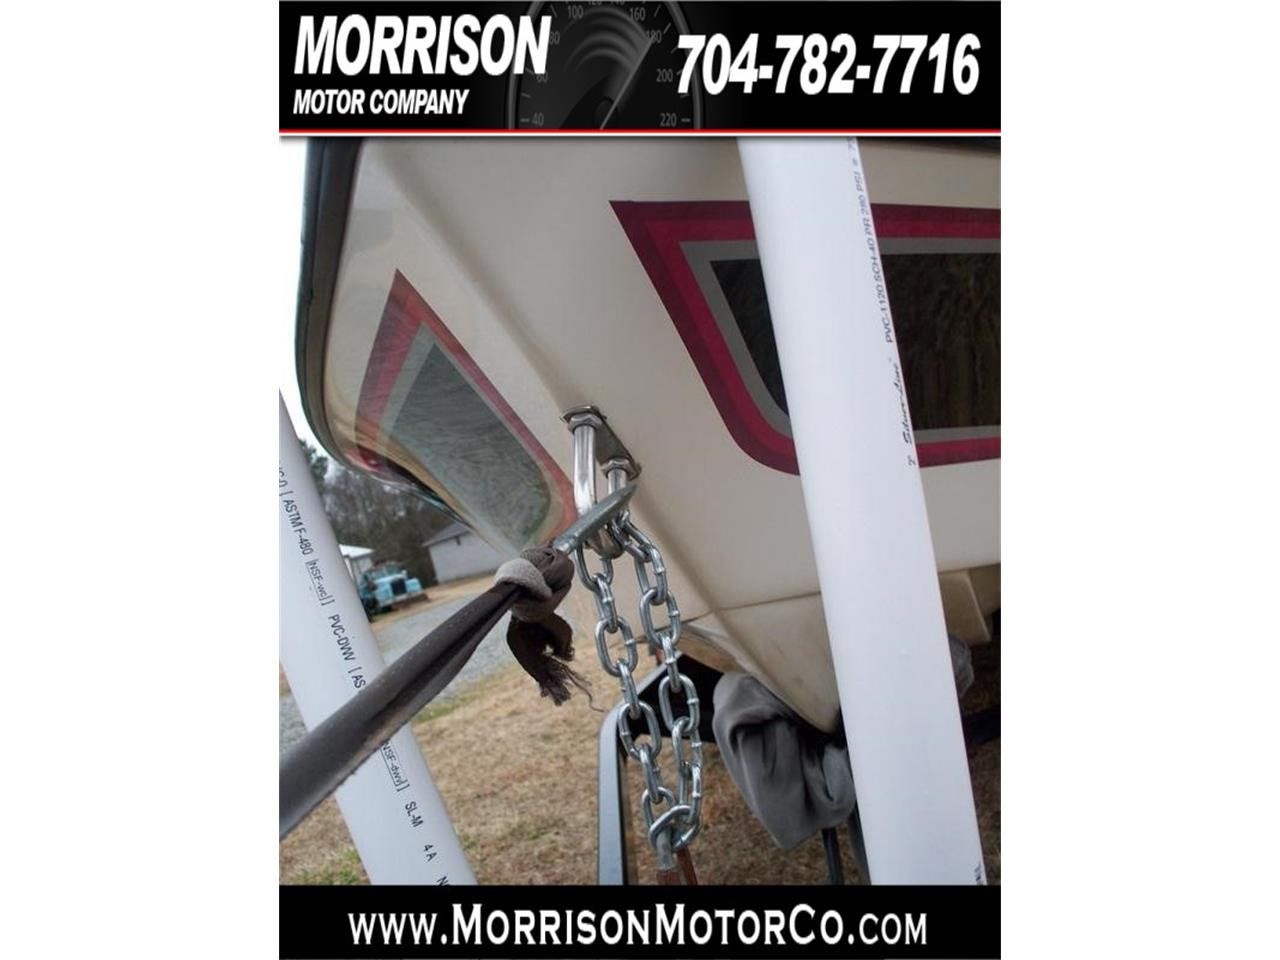 1991 Miscellaneous Boat for sale in Concord, NC – photo 7